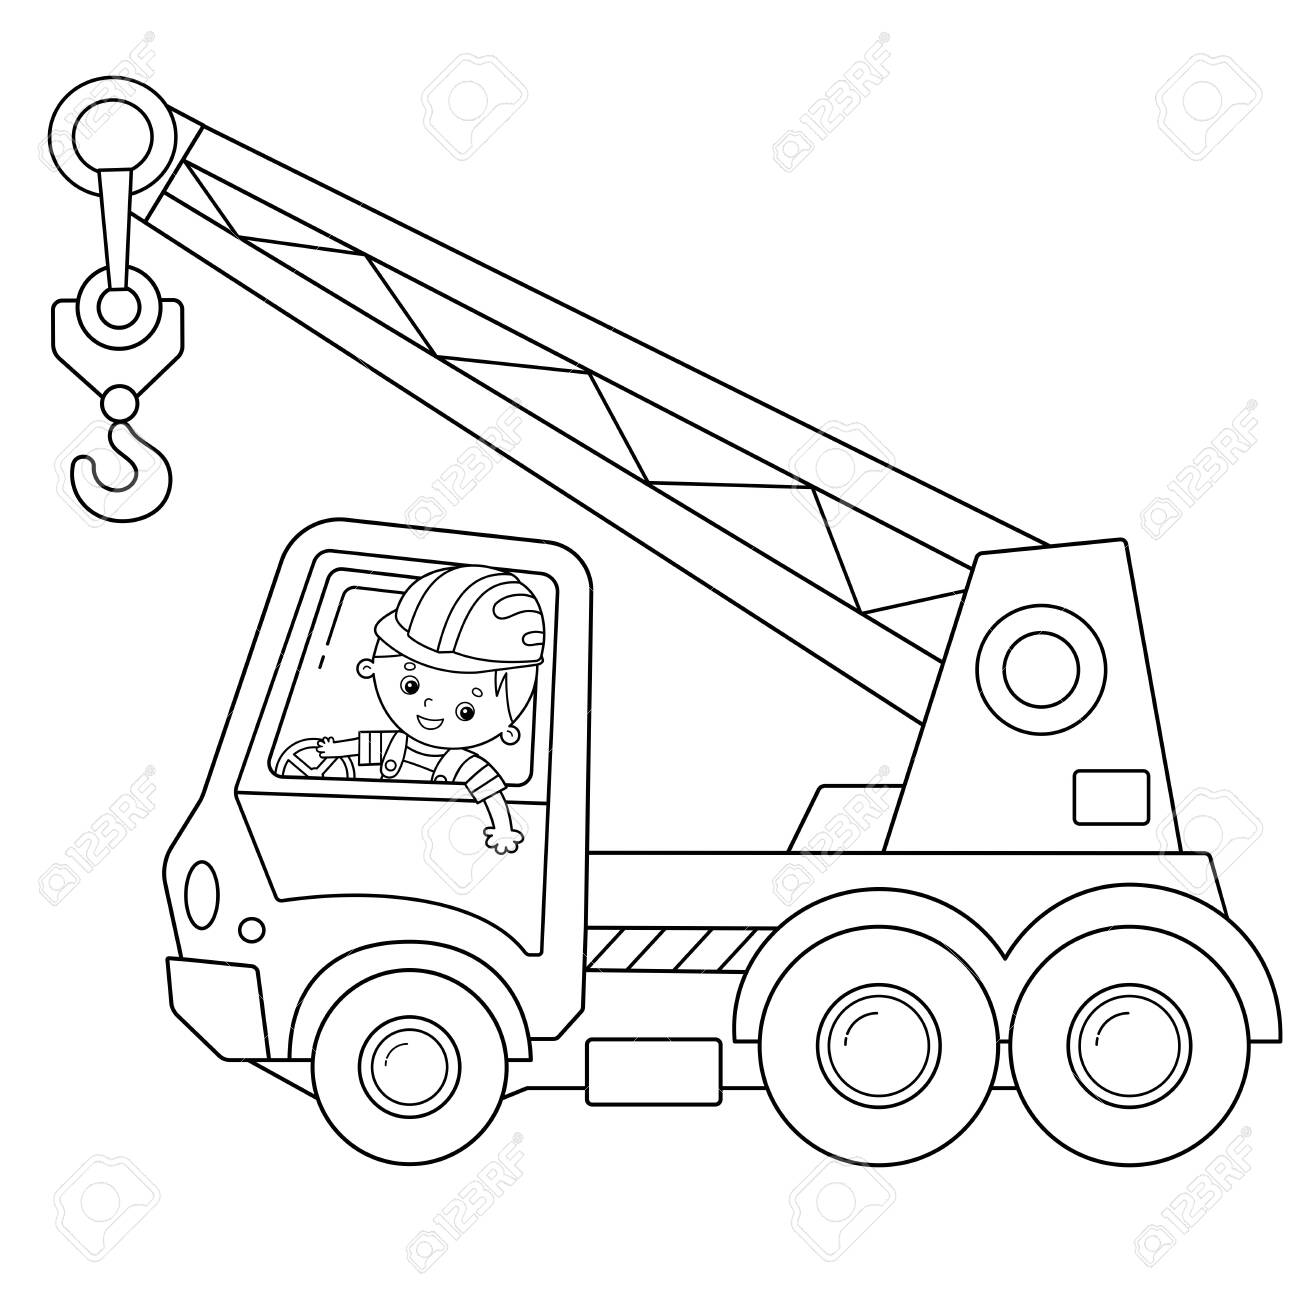 Coloring Page Outline Of Cartoon Truck Crane Construction Vehicles Royalty Free Cliparts Vectors And Stock Illustration Image 133686654